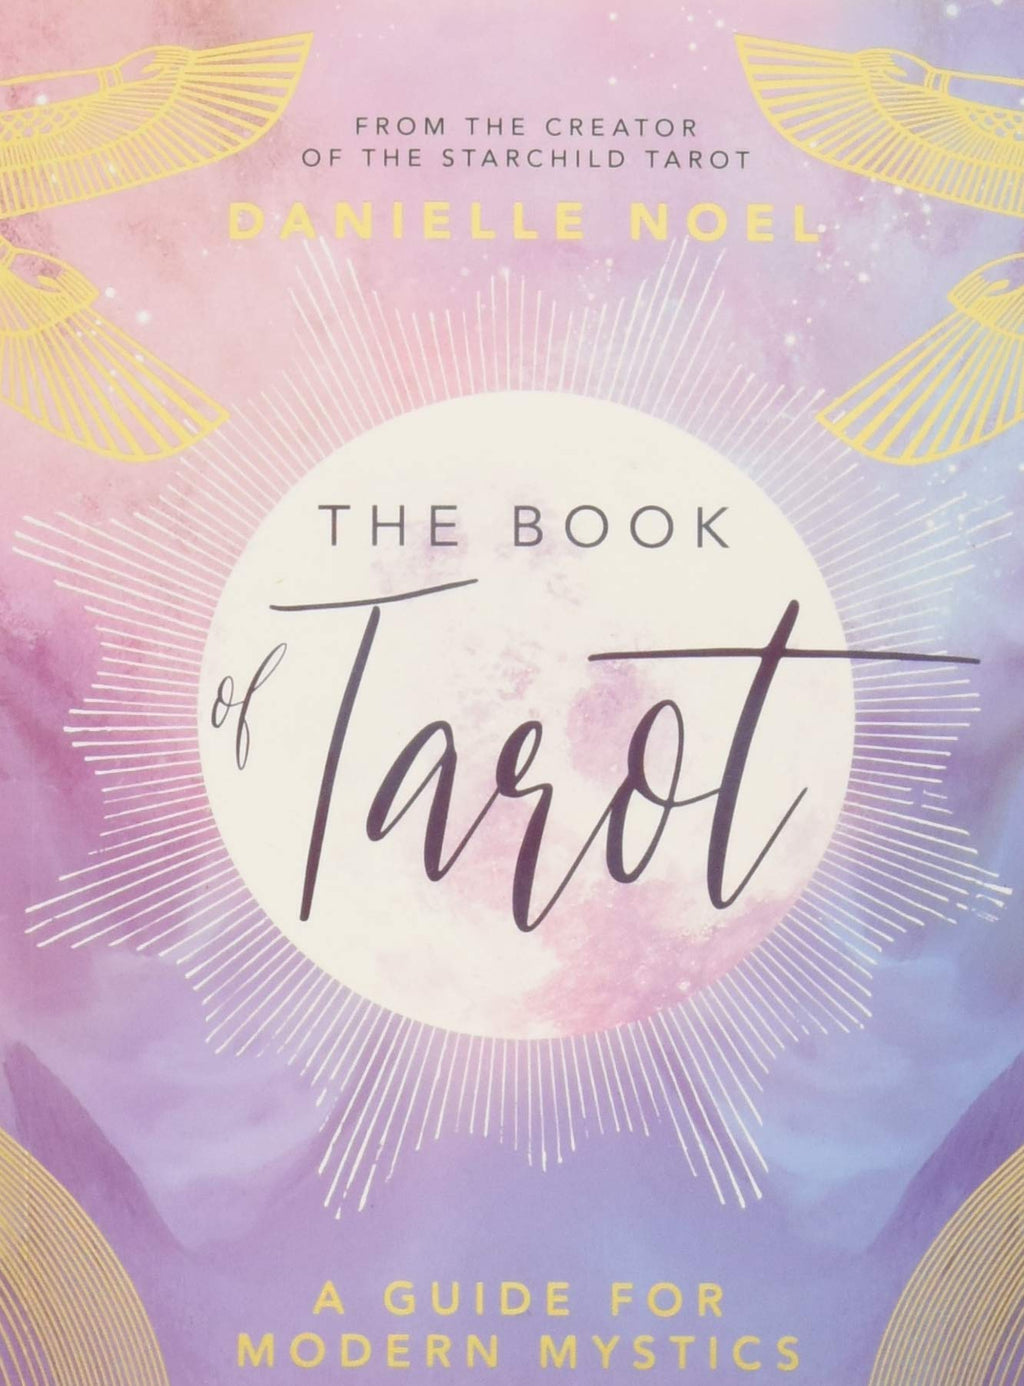 Book of Tarot by Danielle Noel